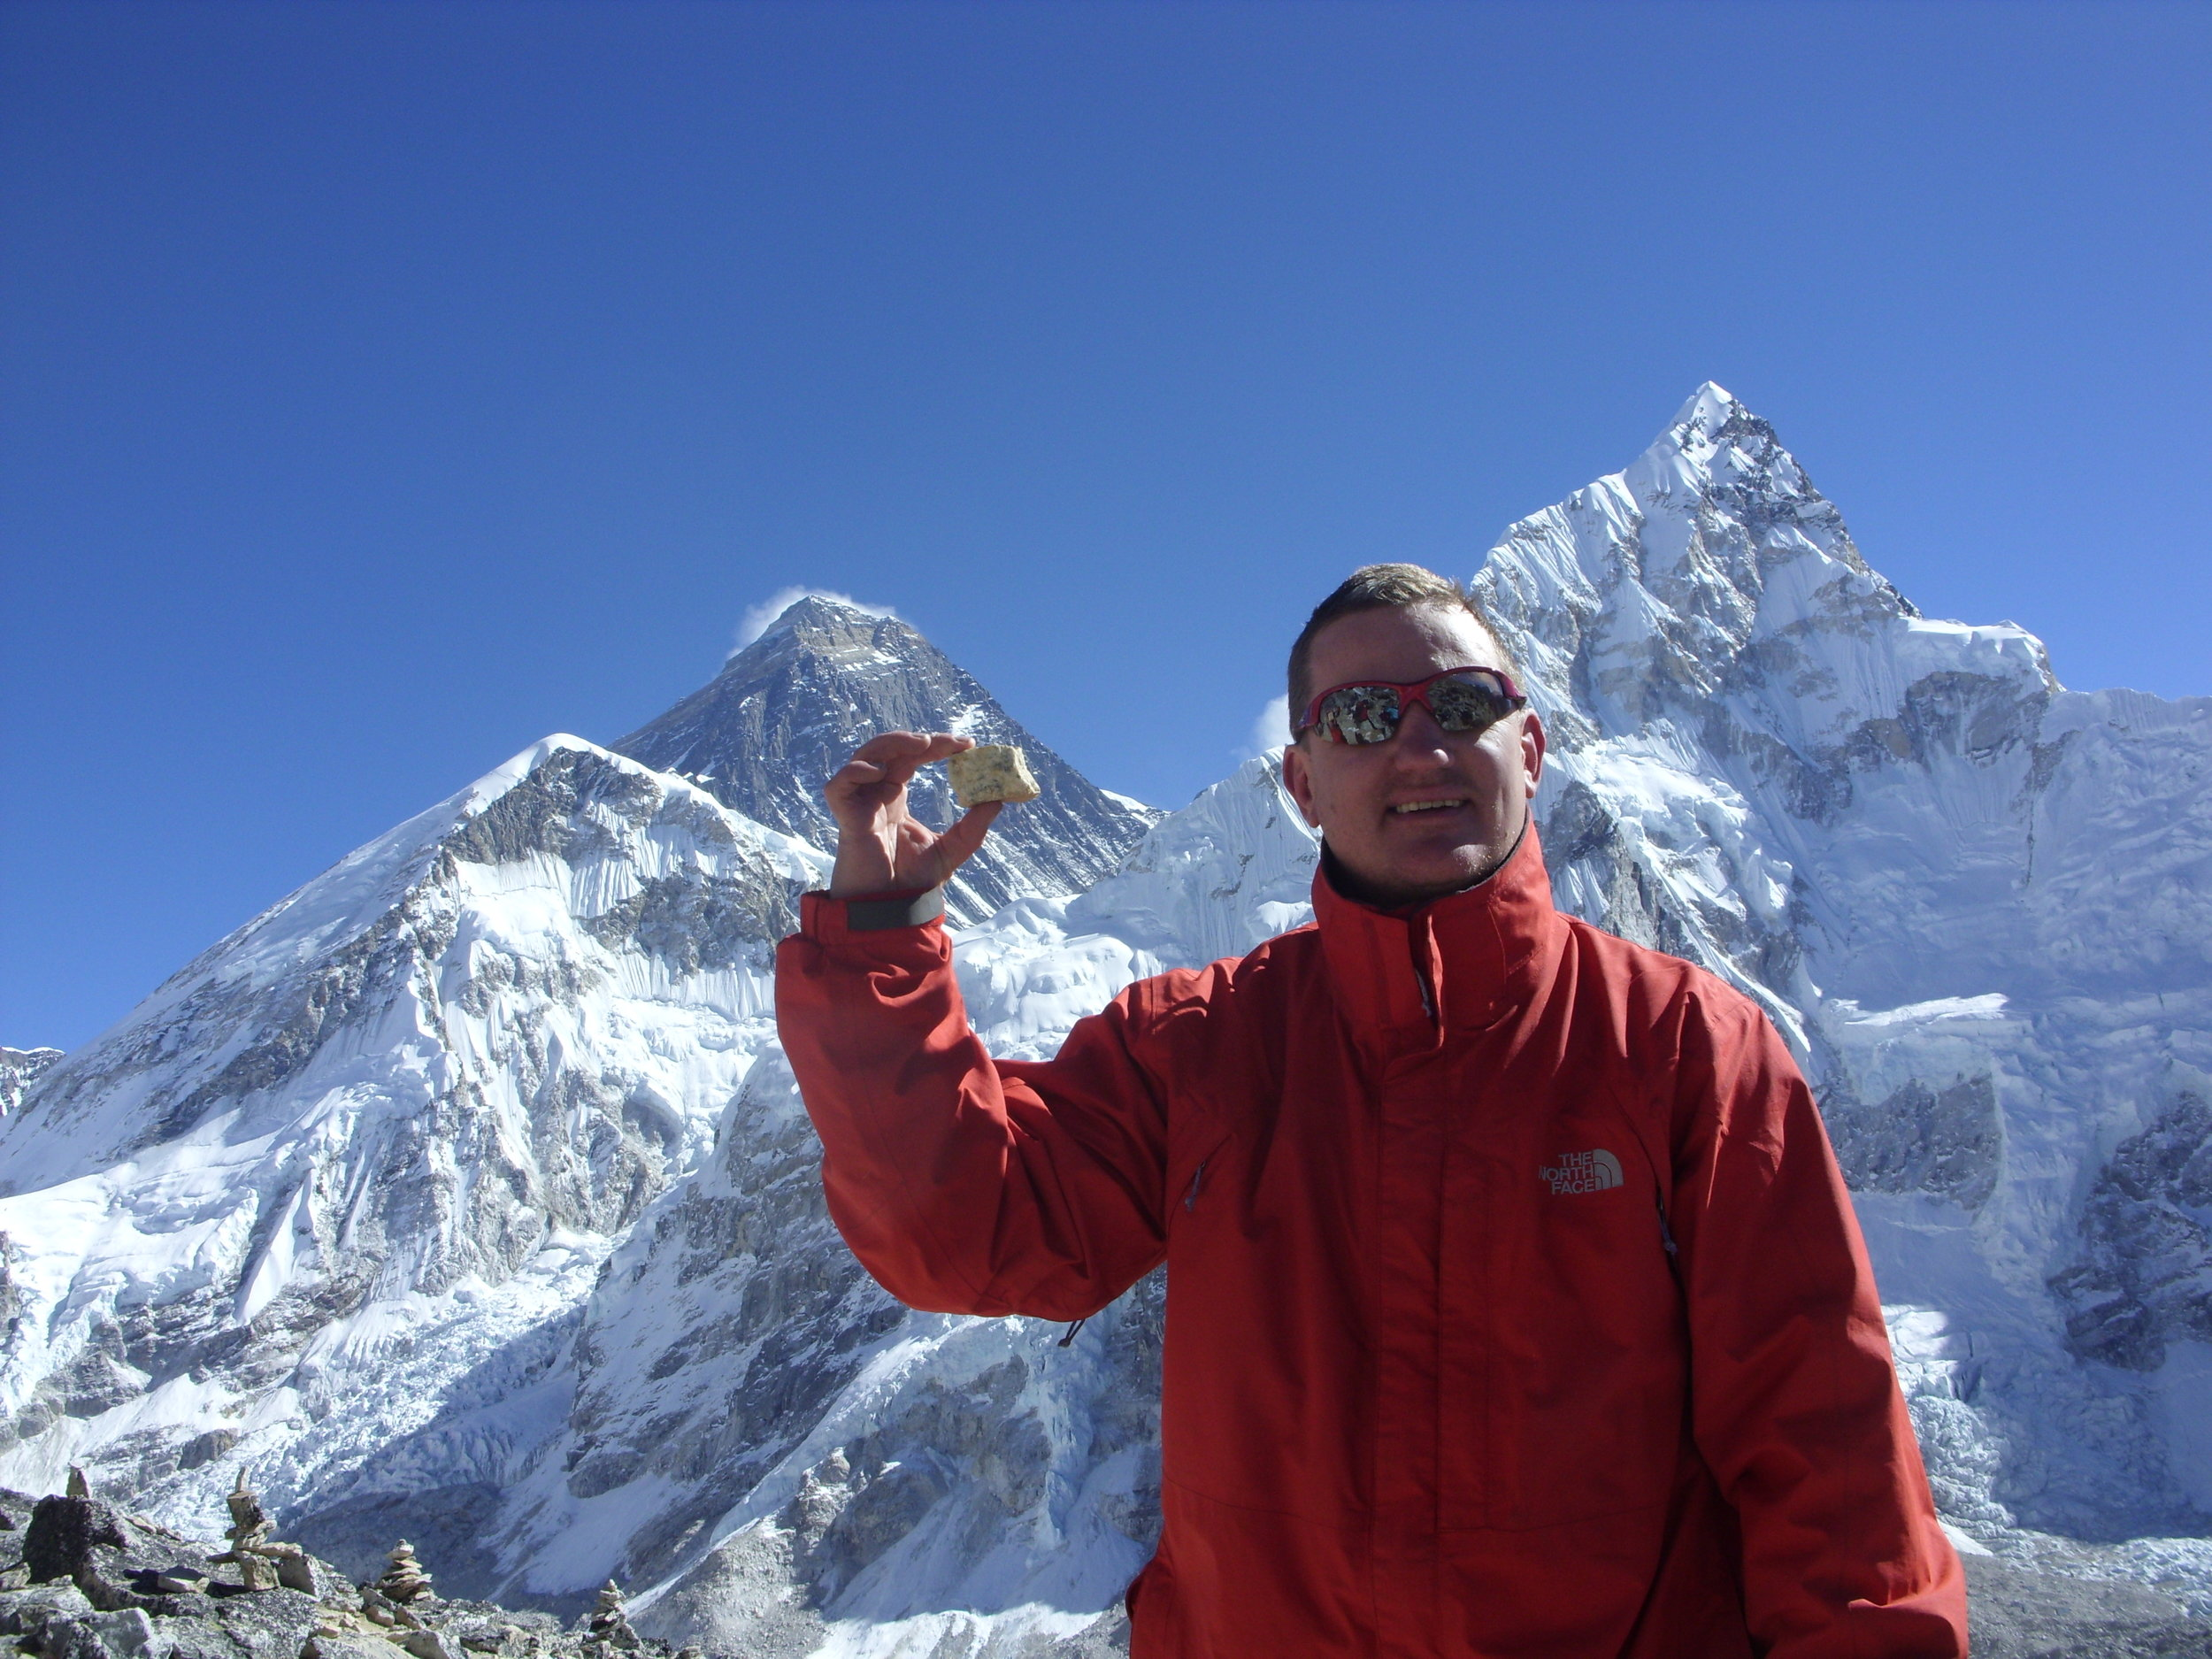 Everest Base Camp, Christmas Eve, 2009